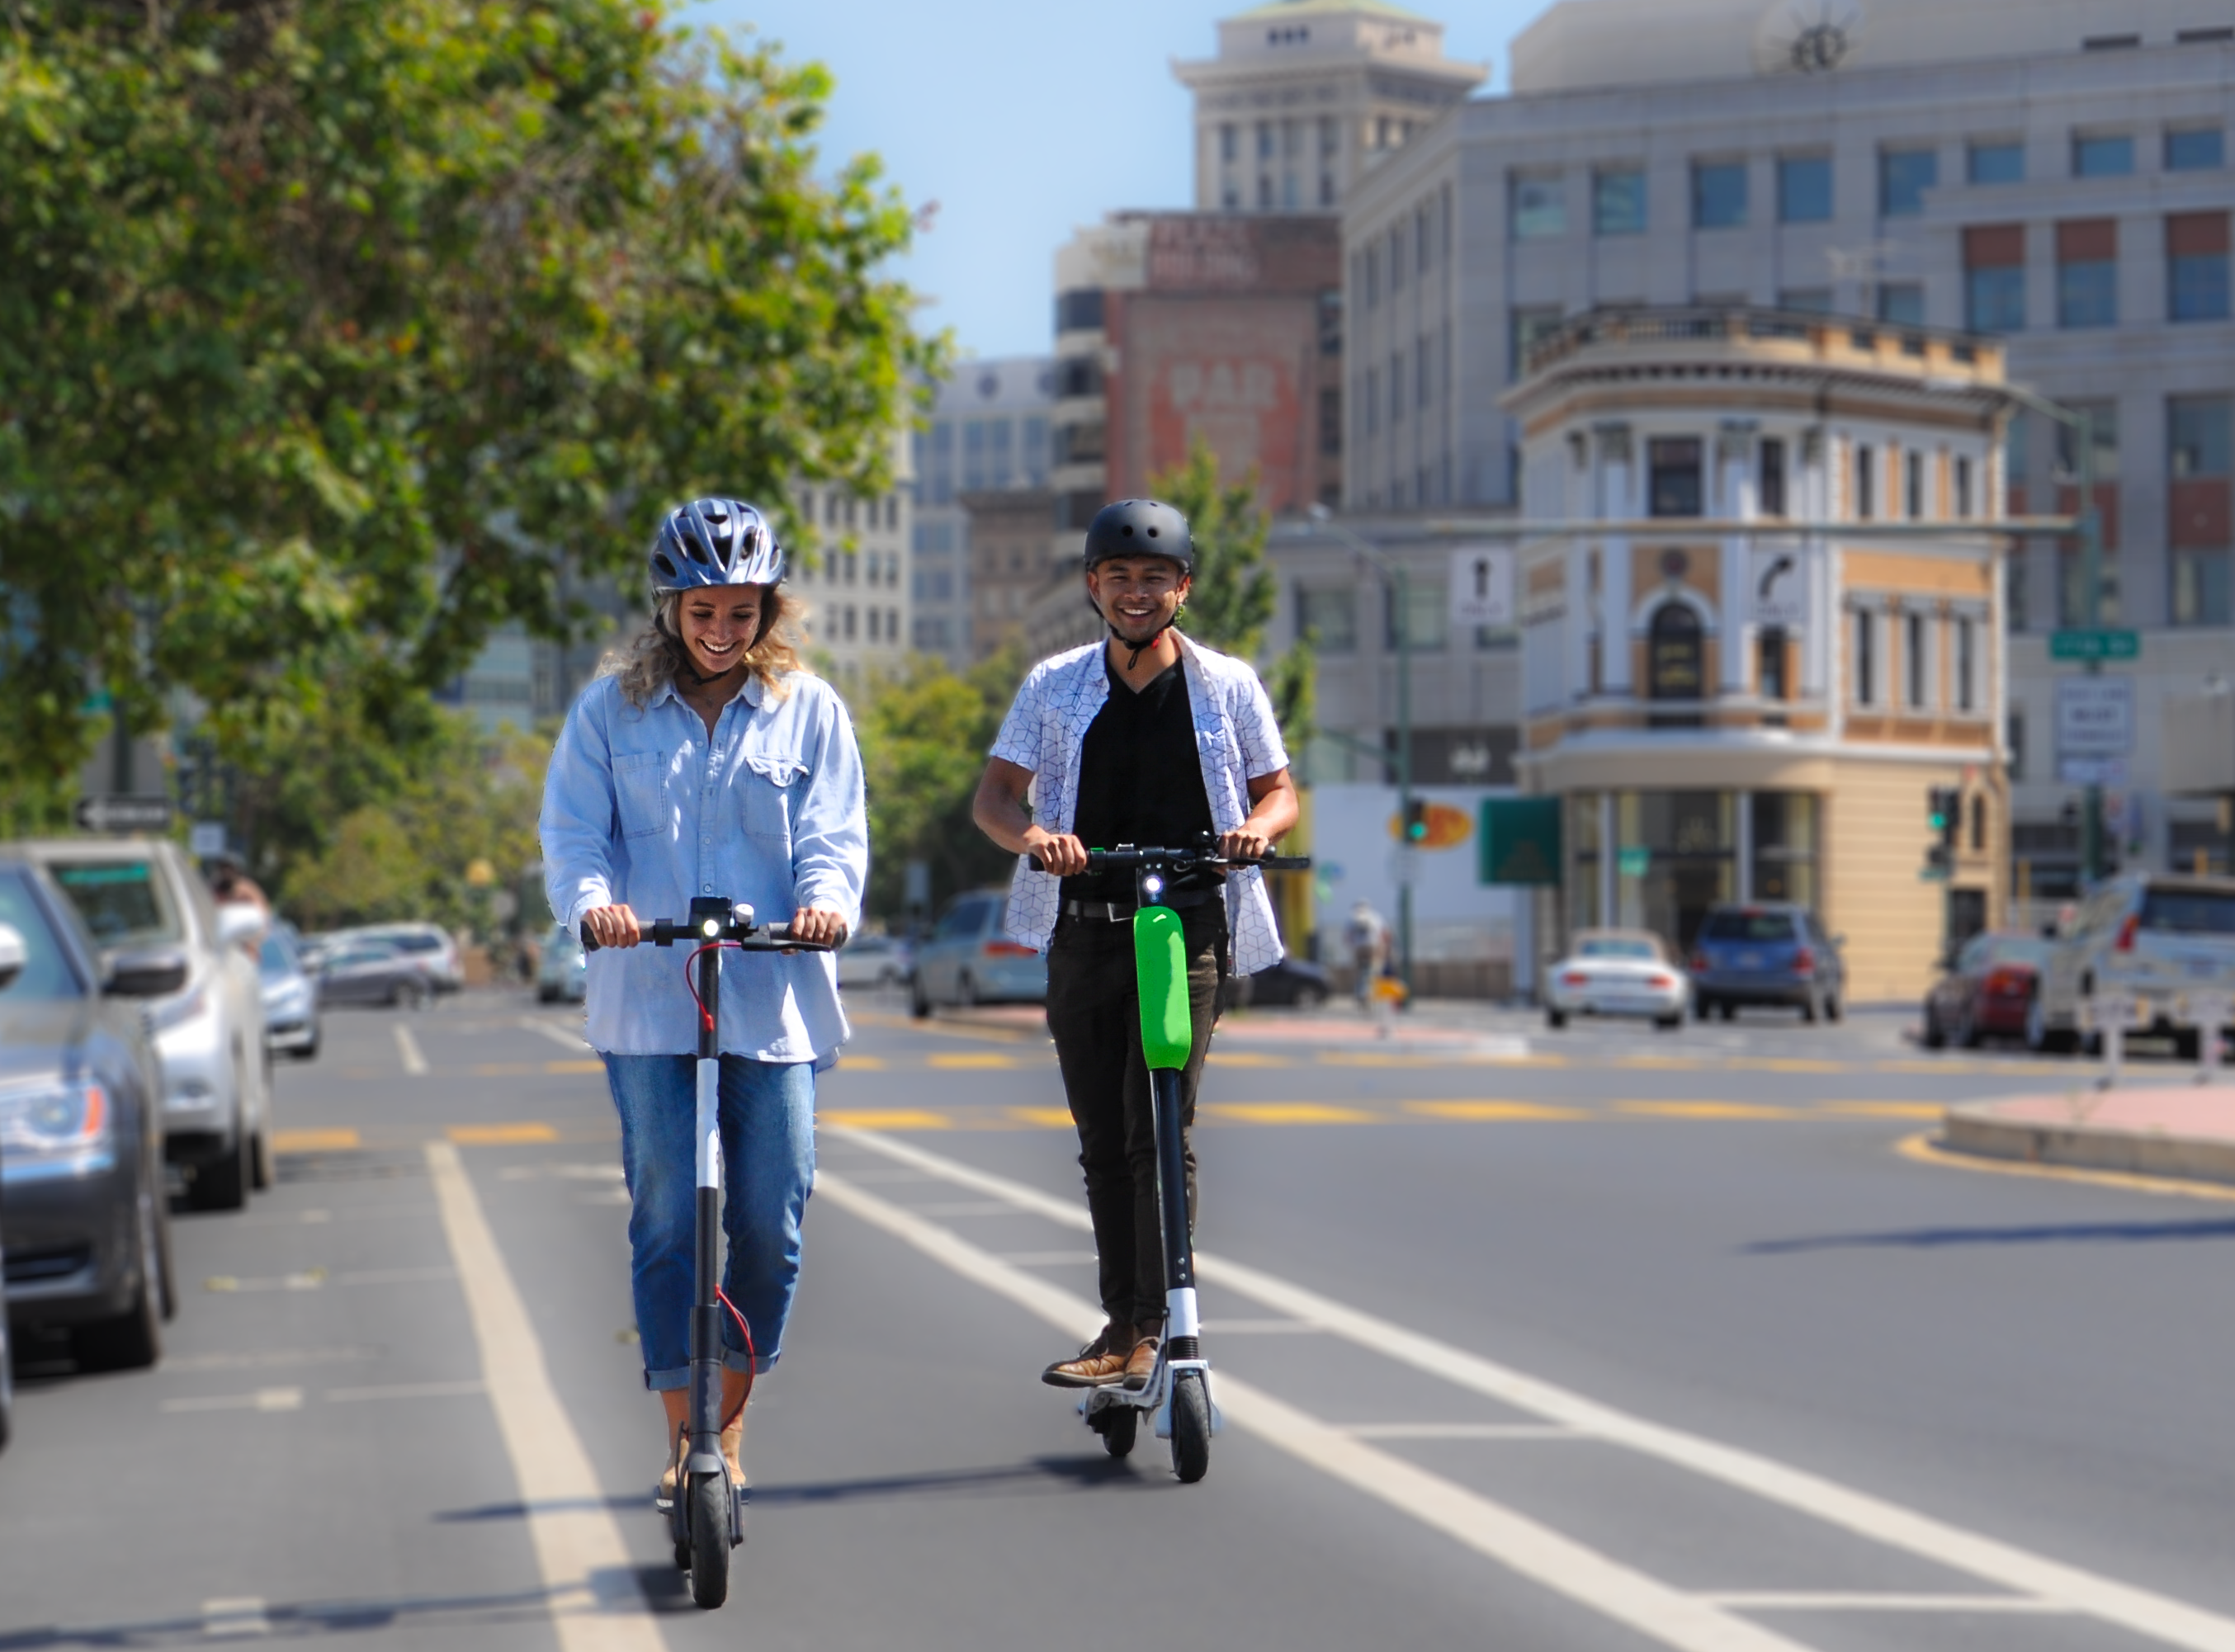 Two people riding scooters